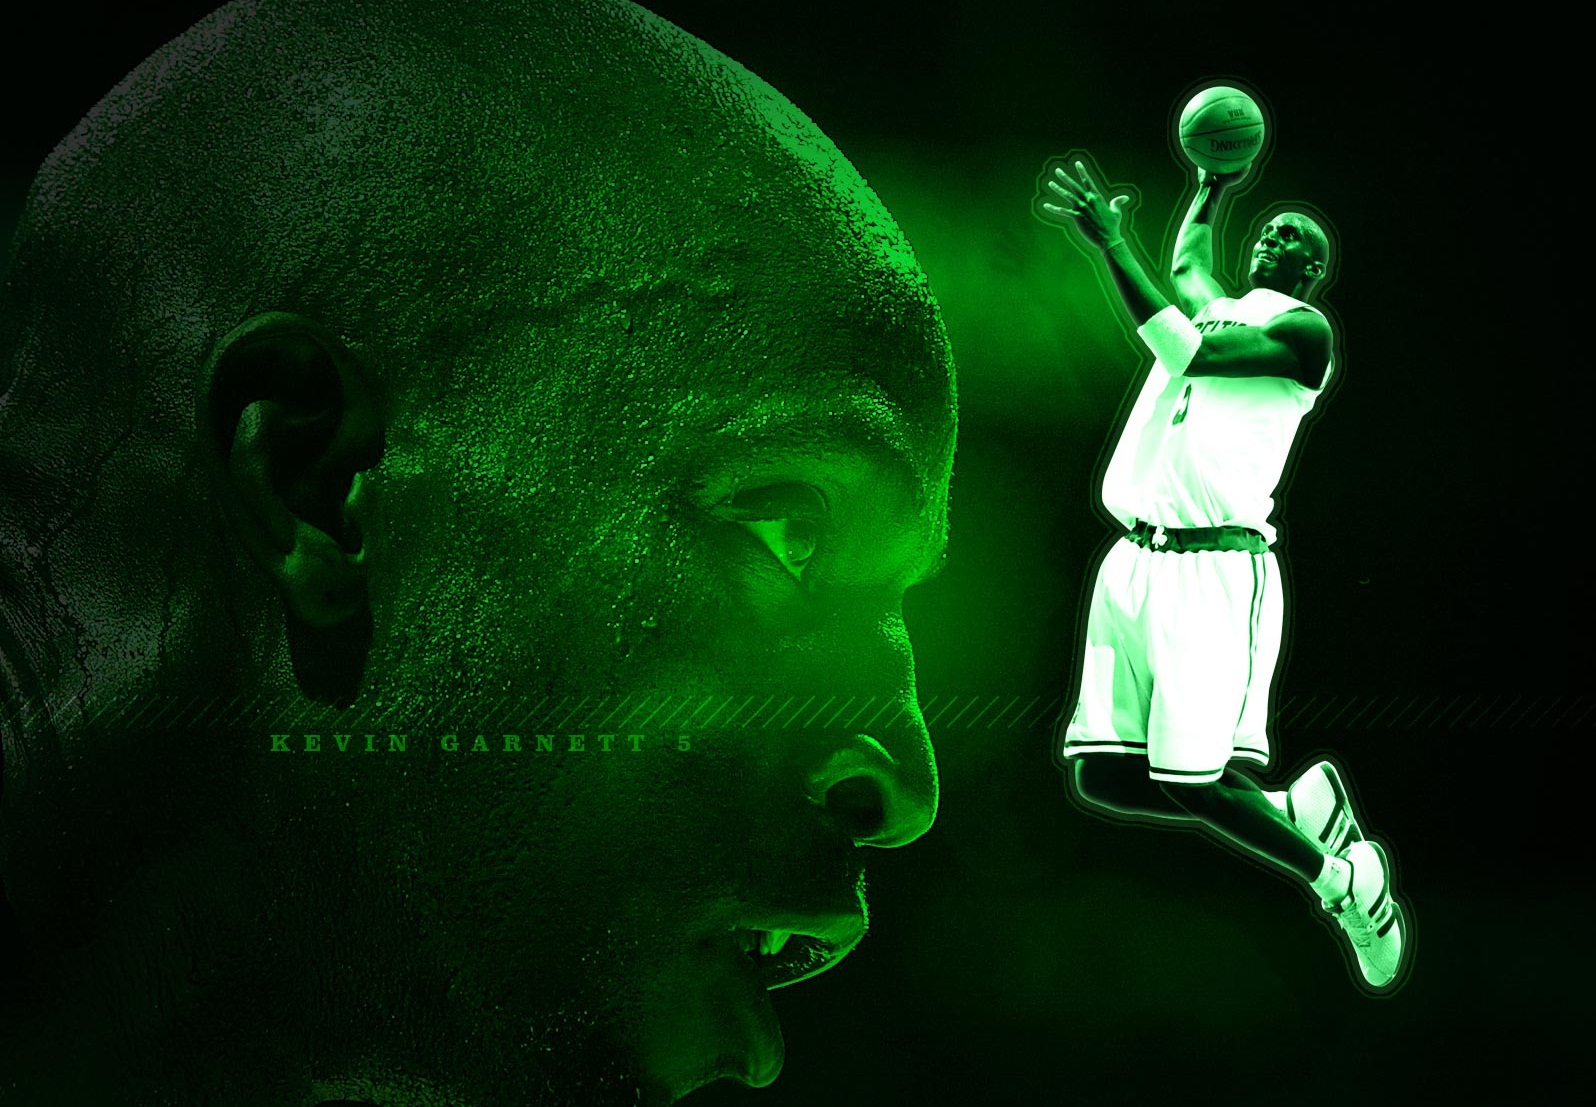 Kevin Garnett HD Wallpapers 2013 2014 HD Wallpapers 1596x1107